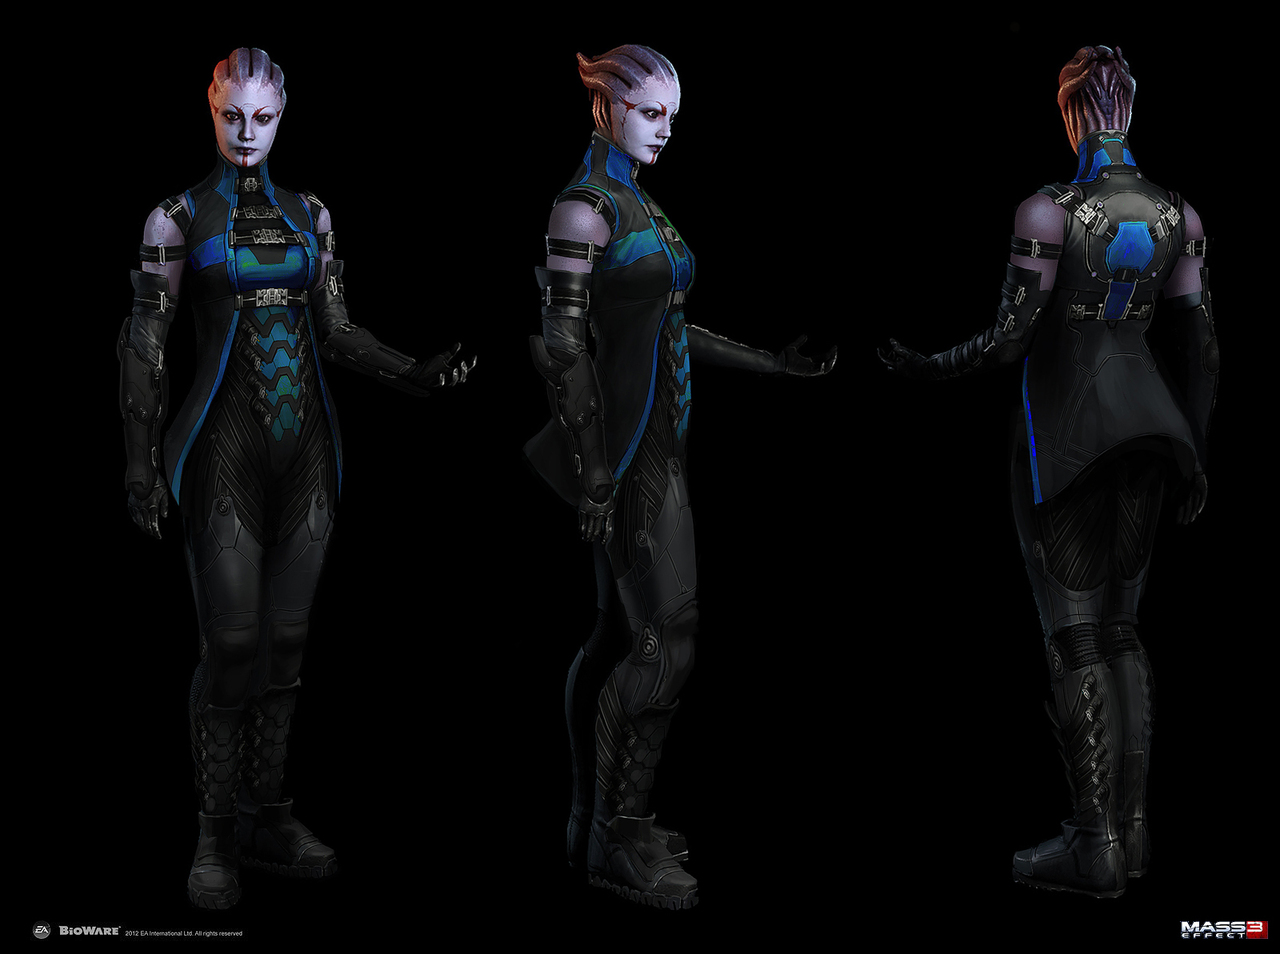 mass effect 3 - dlc liara alt appearance by afigini